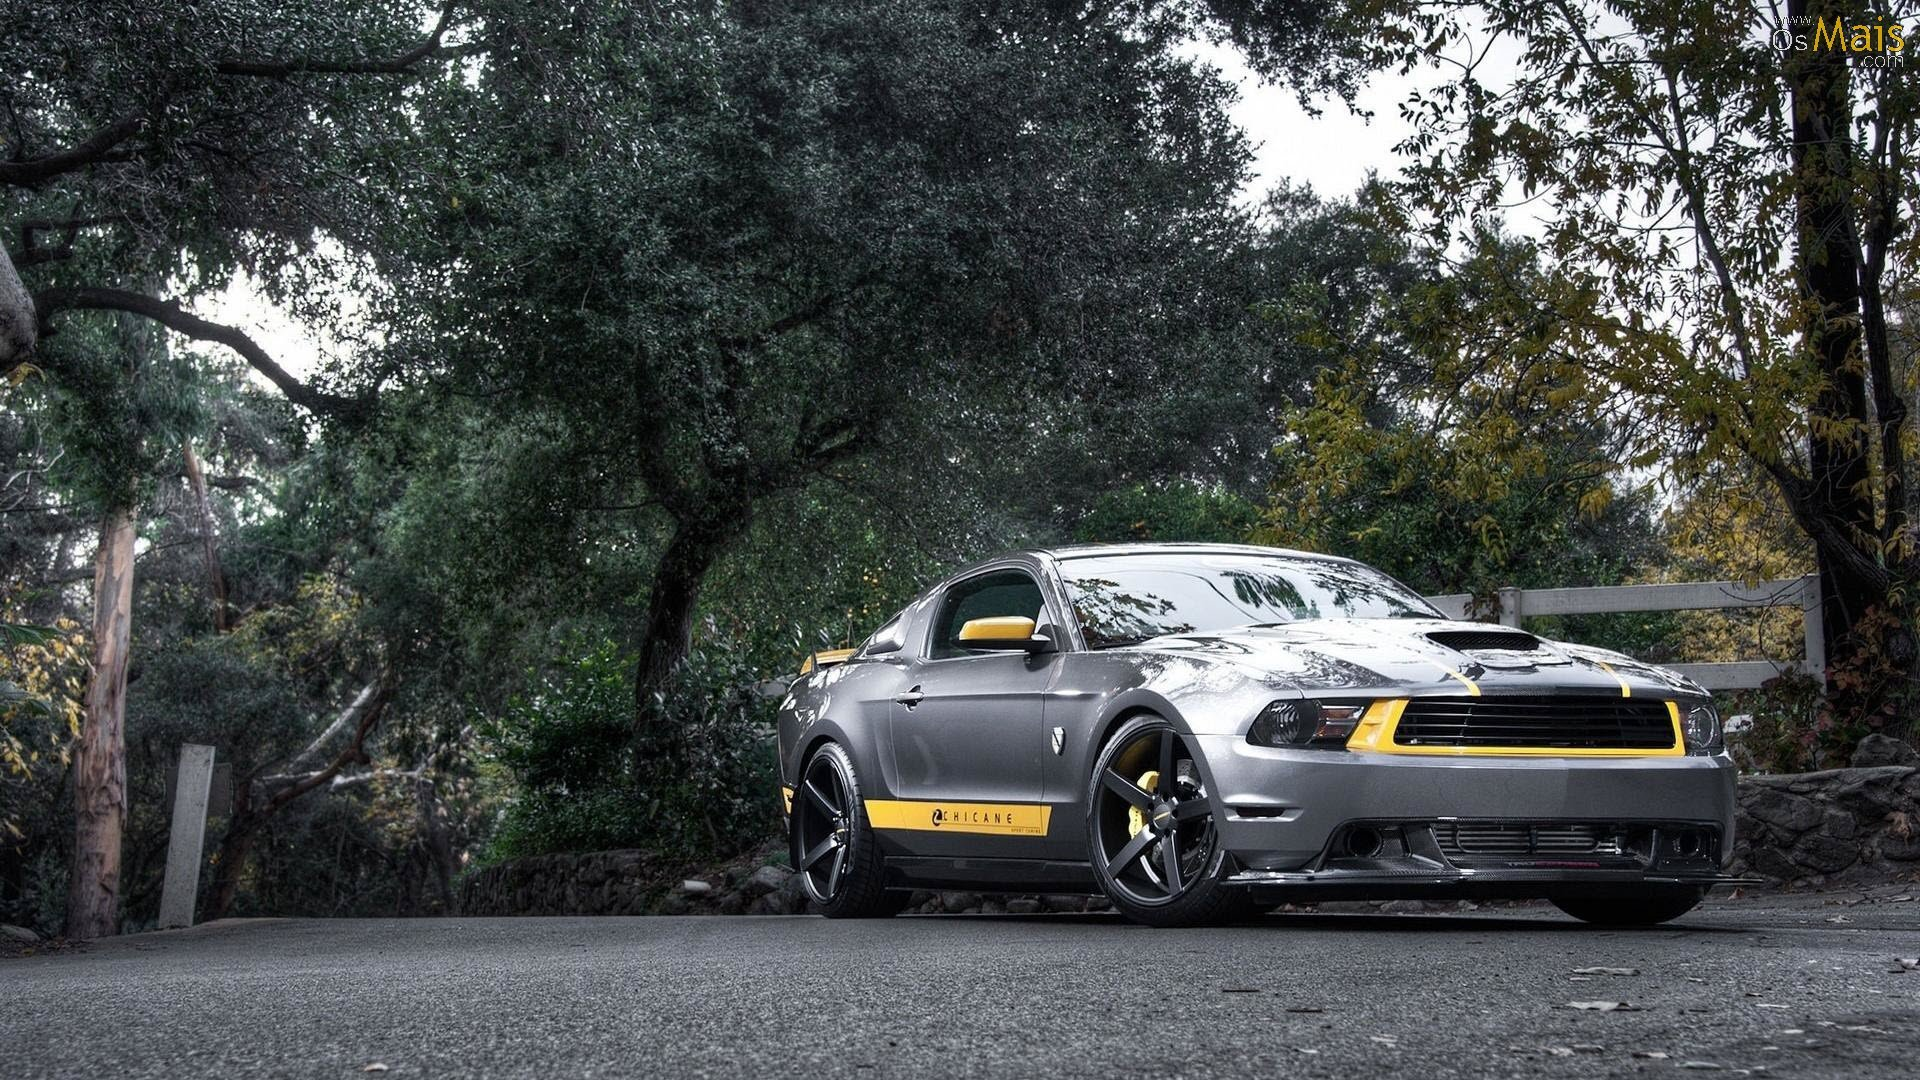 Wallpaper Ford Mustang 26 Wallpaper Ford Mustang 27 Wallpaper Ford 1920x1080